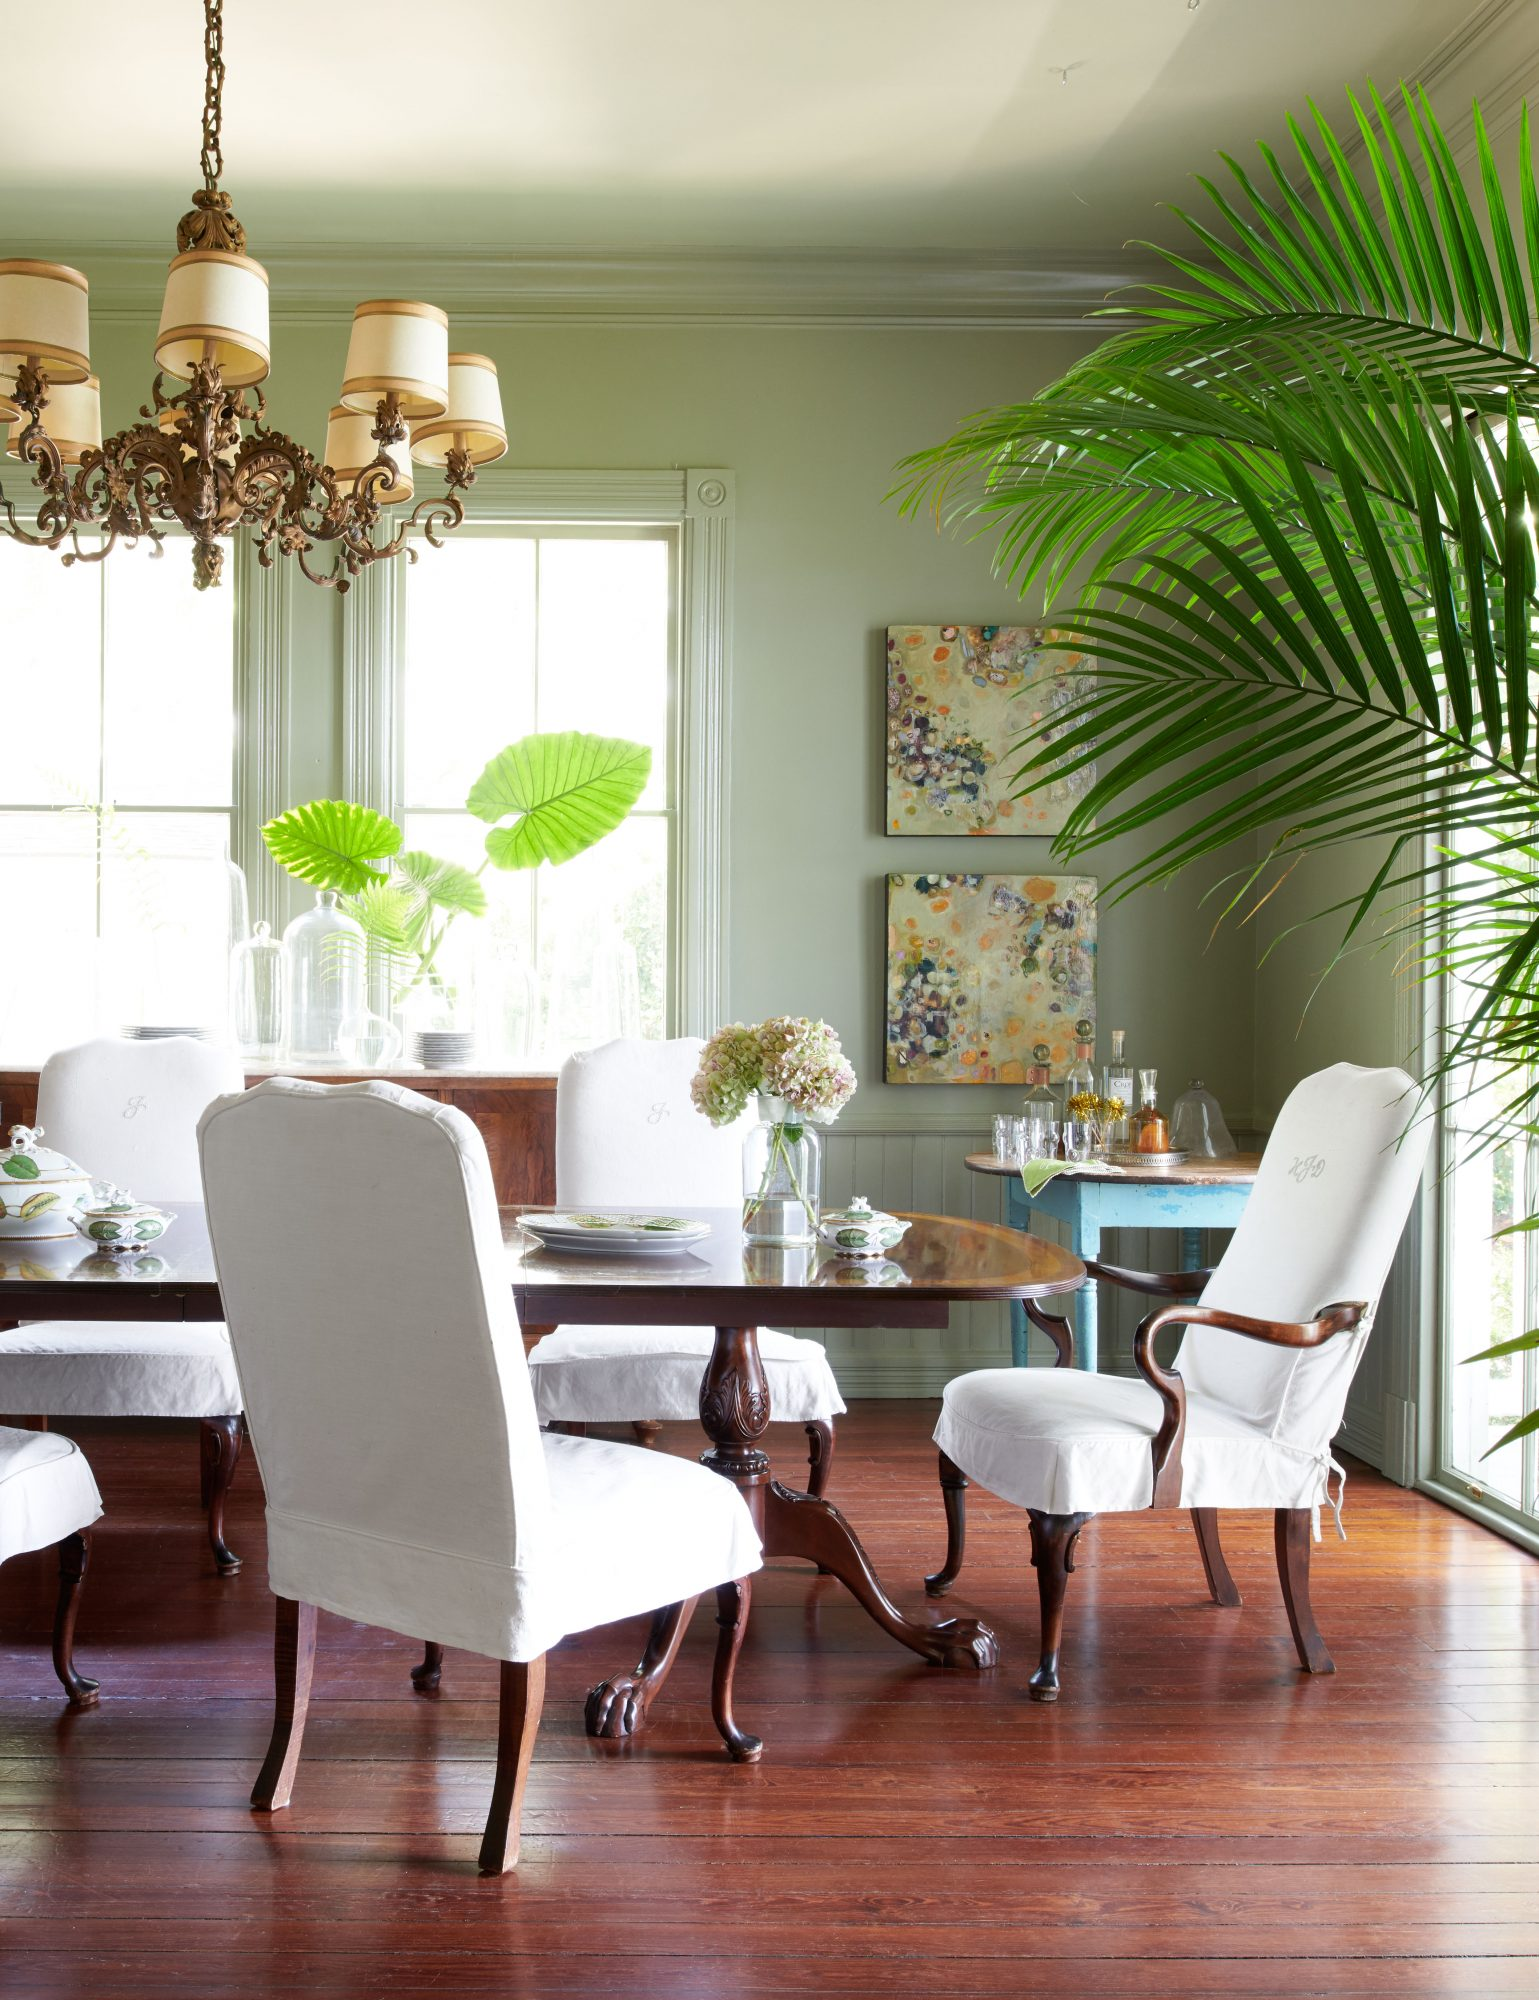 Sage Green Dining Room with White Chairs